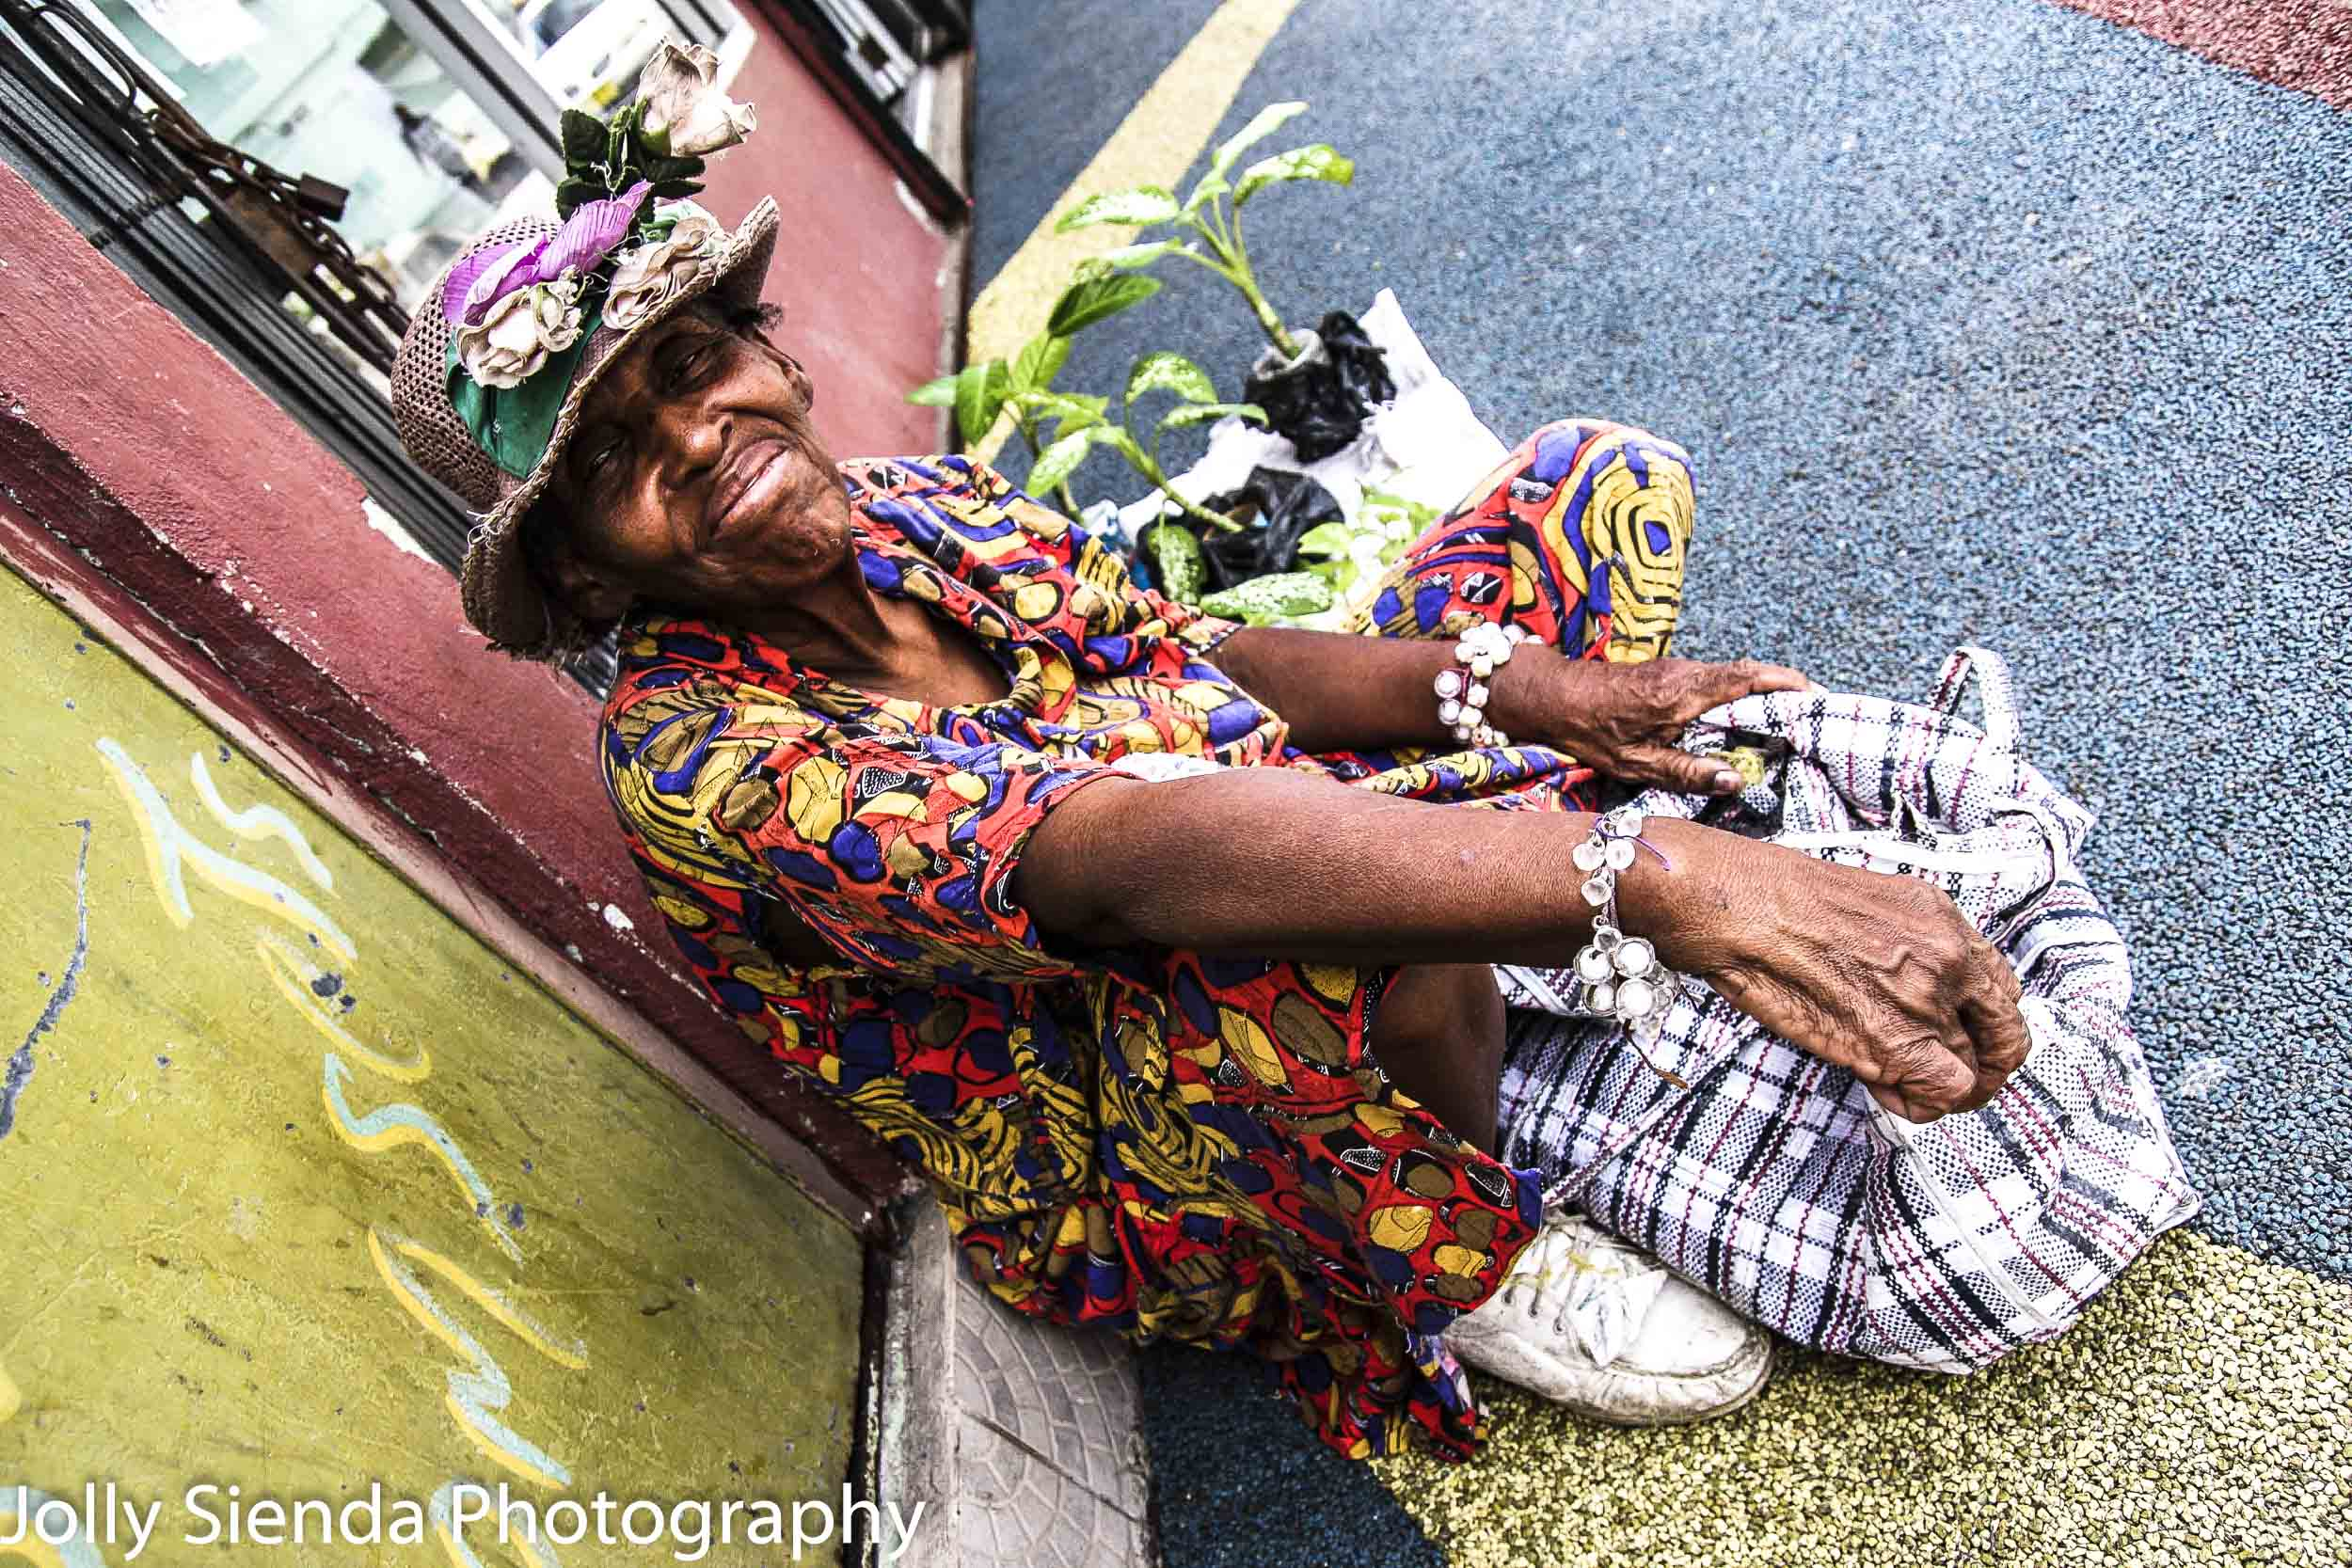 Old woman sells plants on the sidewalk